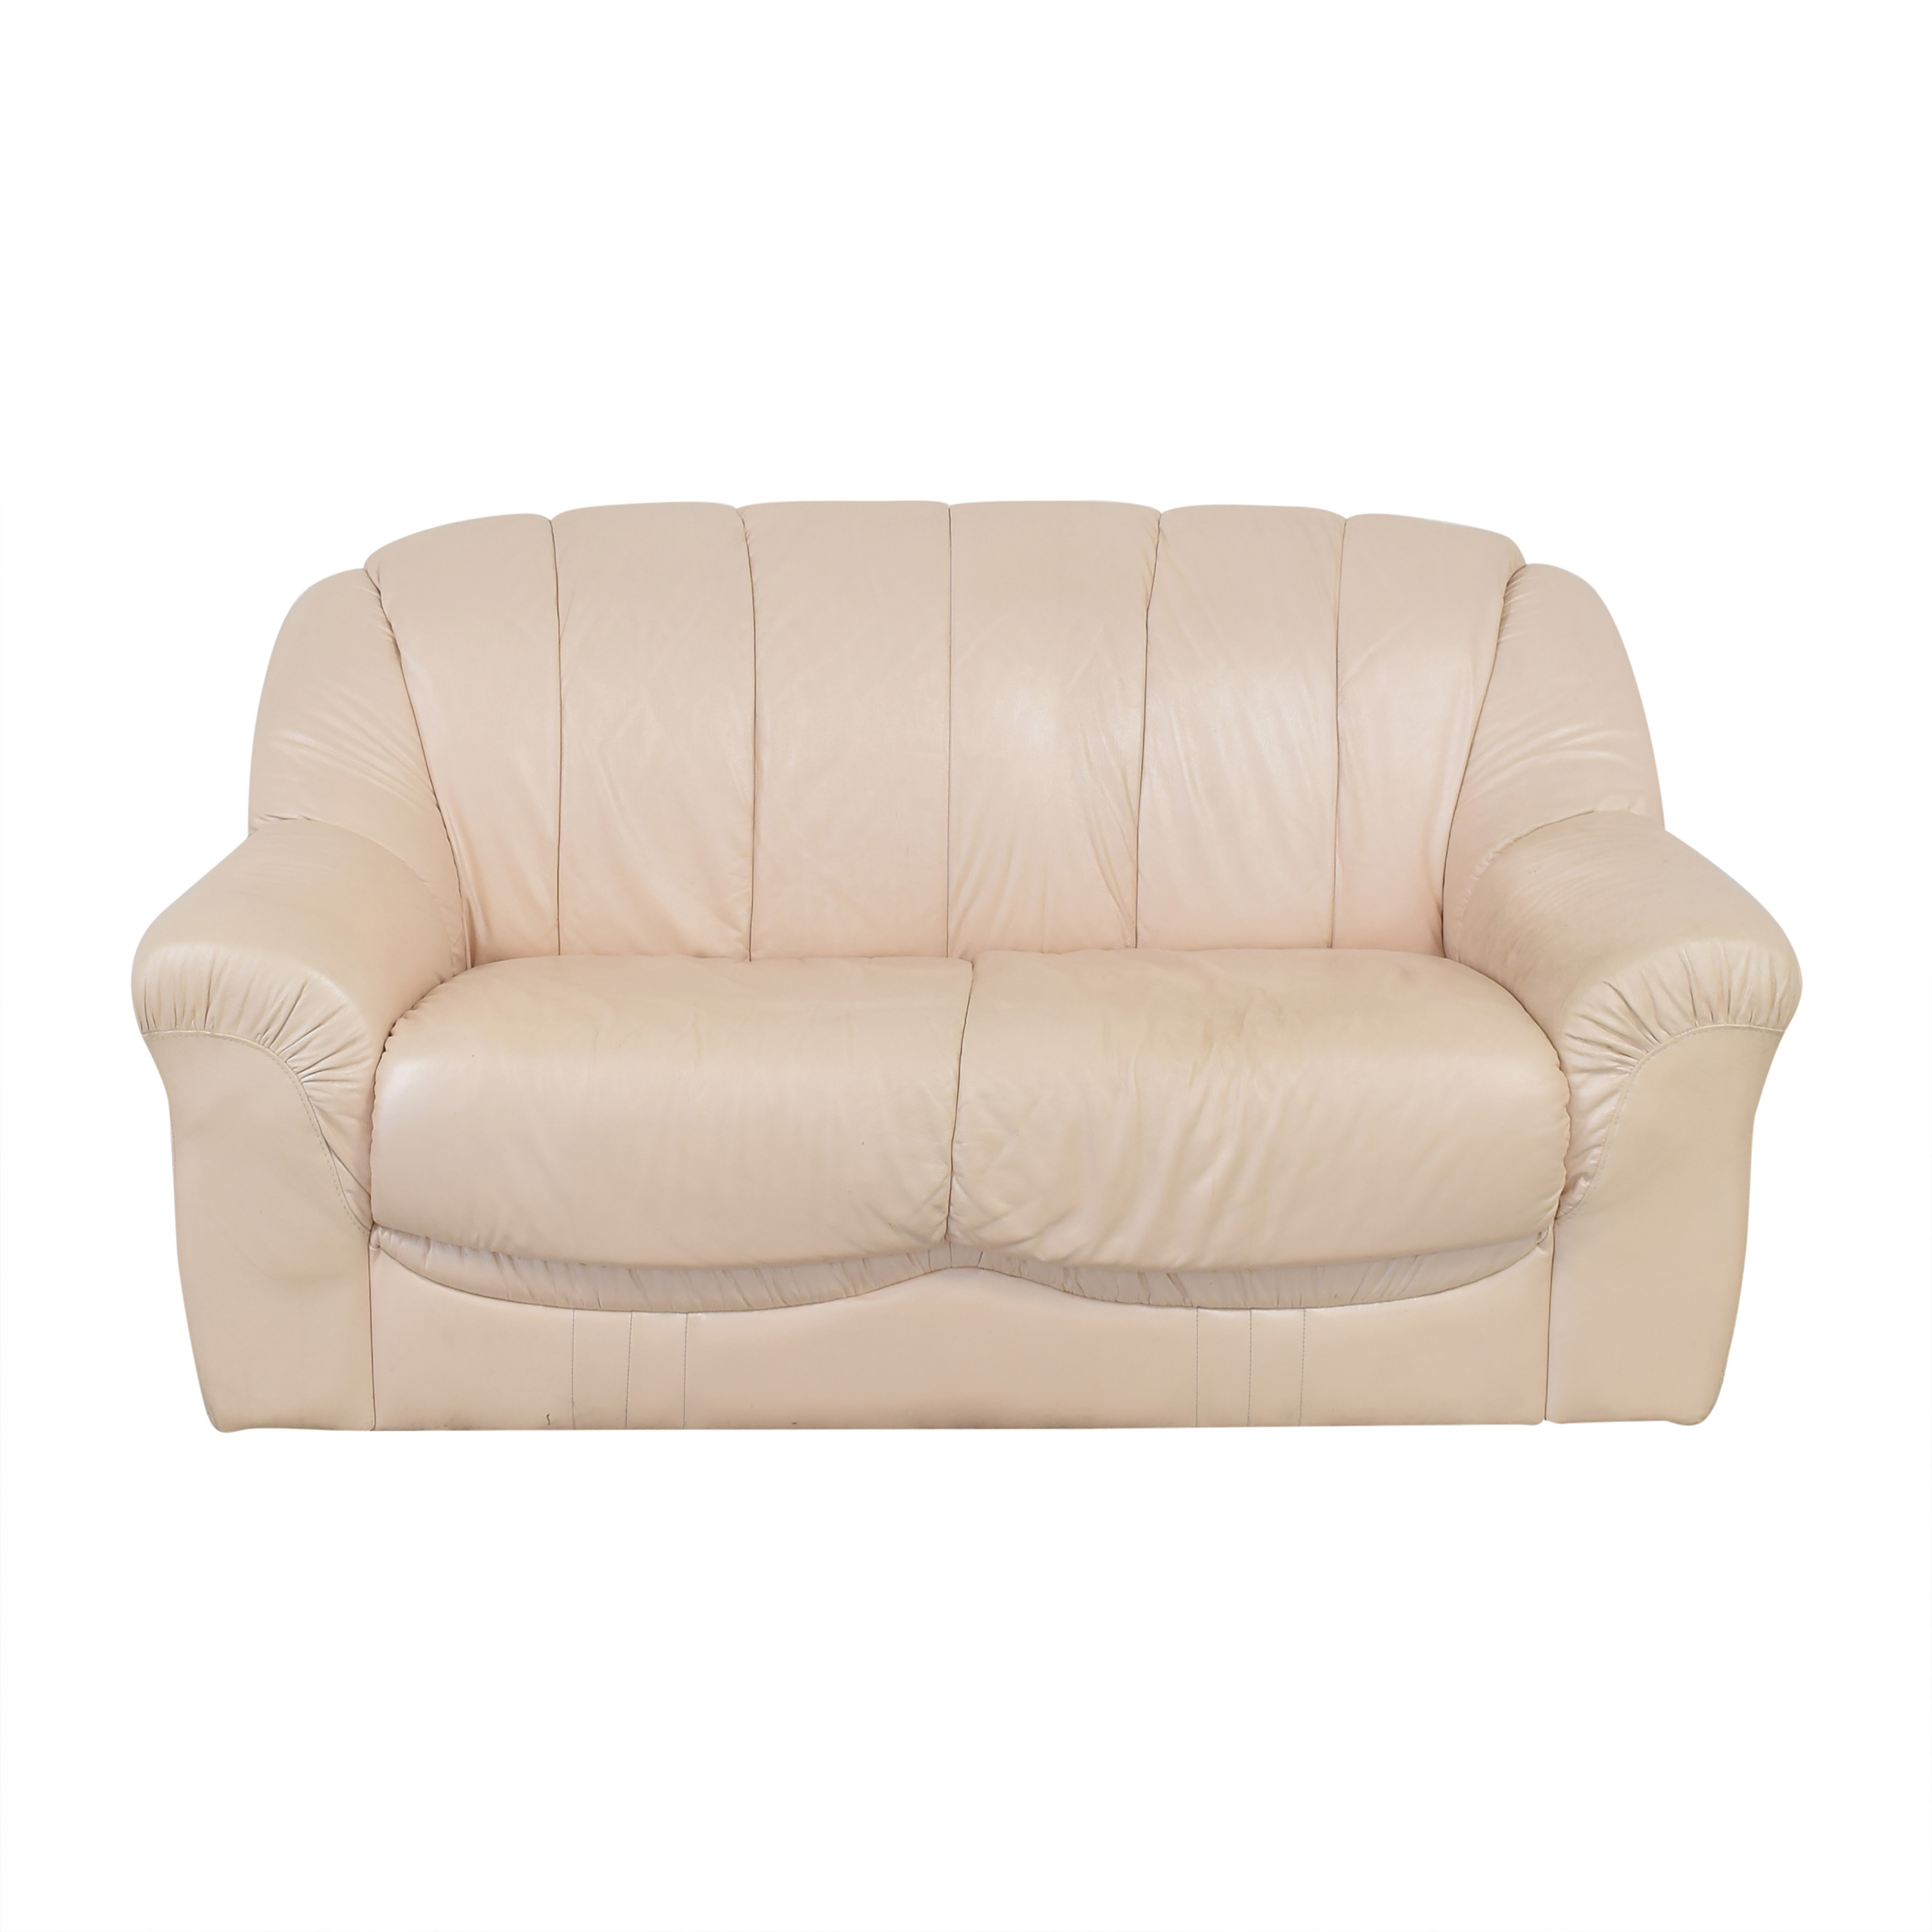 Roma Furniture Roma Leather Loveseat for sale